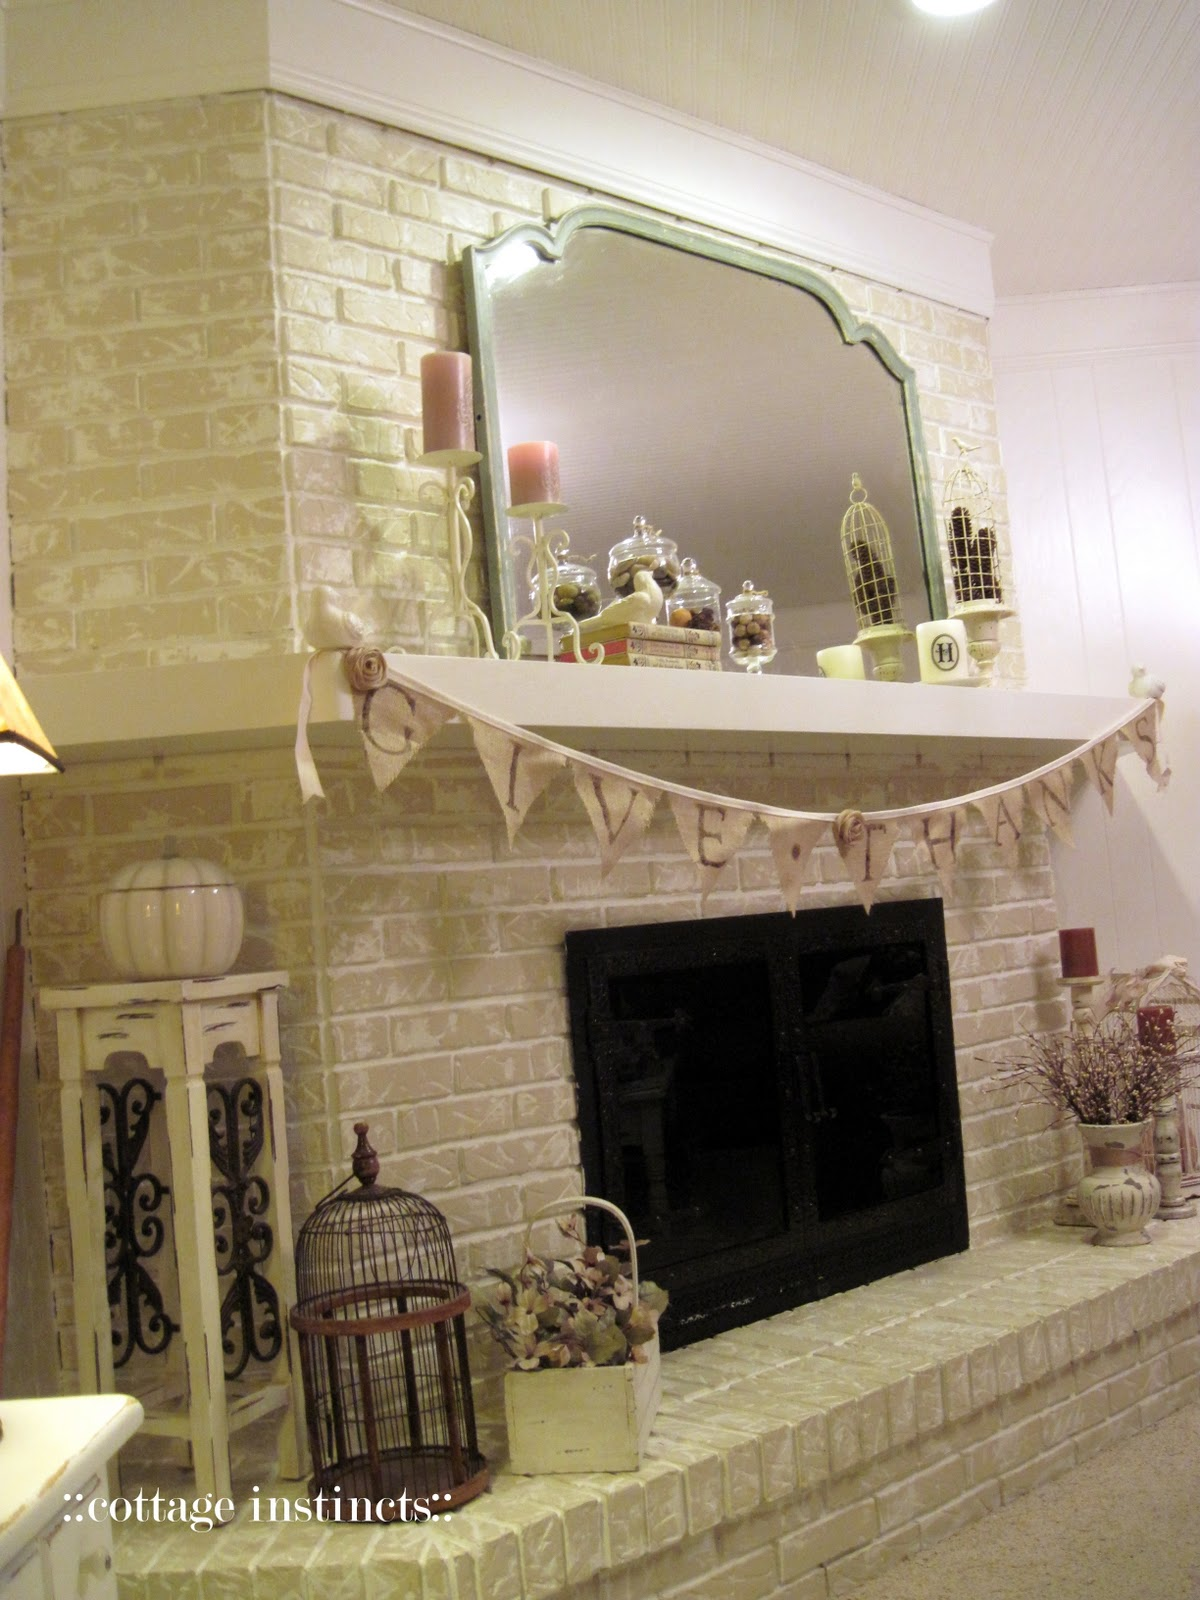 Cottage Instincts Fireplace Before And After With Some